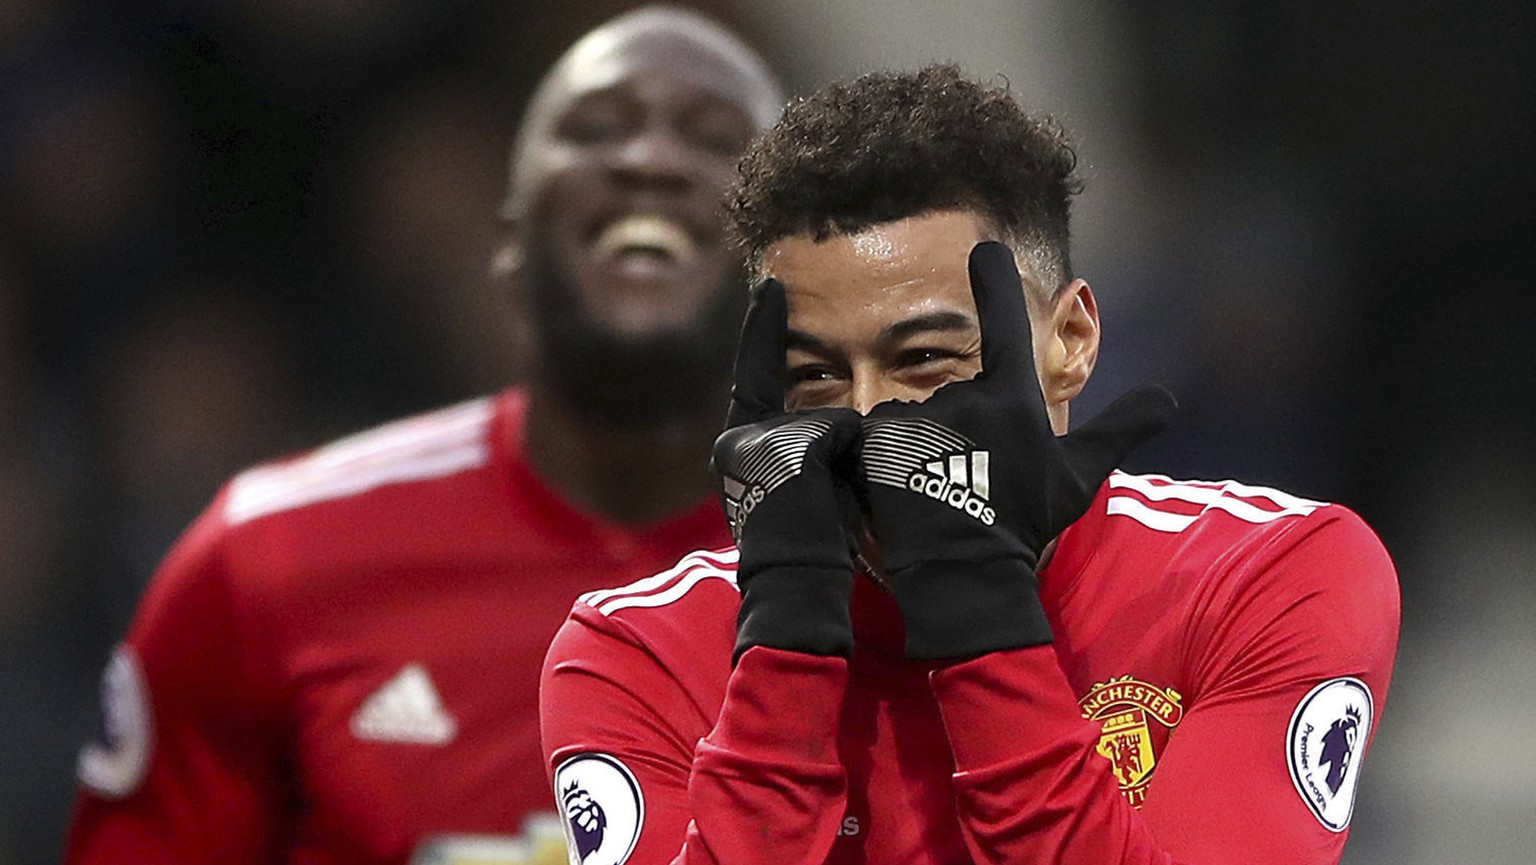 Manchester United's Jesse Lingard, right, celebrates scoring against West Bromwich Albion with teammate Romelu Lukakus during their English Premier League soccer match at The Hawthorns, West Bromwich, England, Sunday Dec. 17, 2017. (Nick Potts/PA via AP)